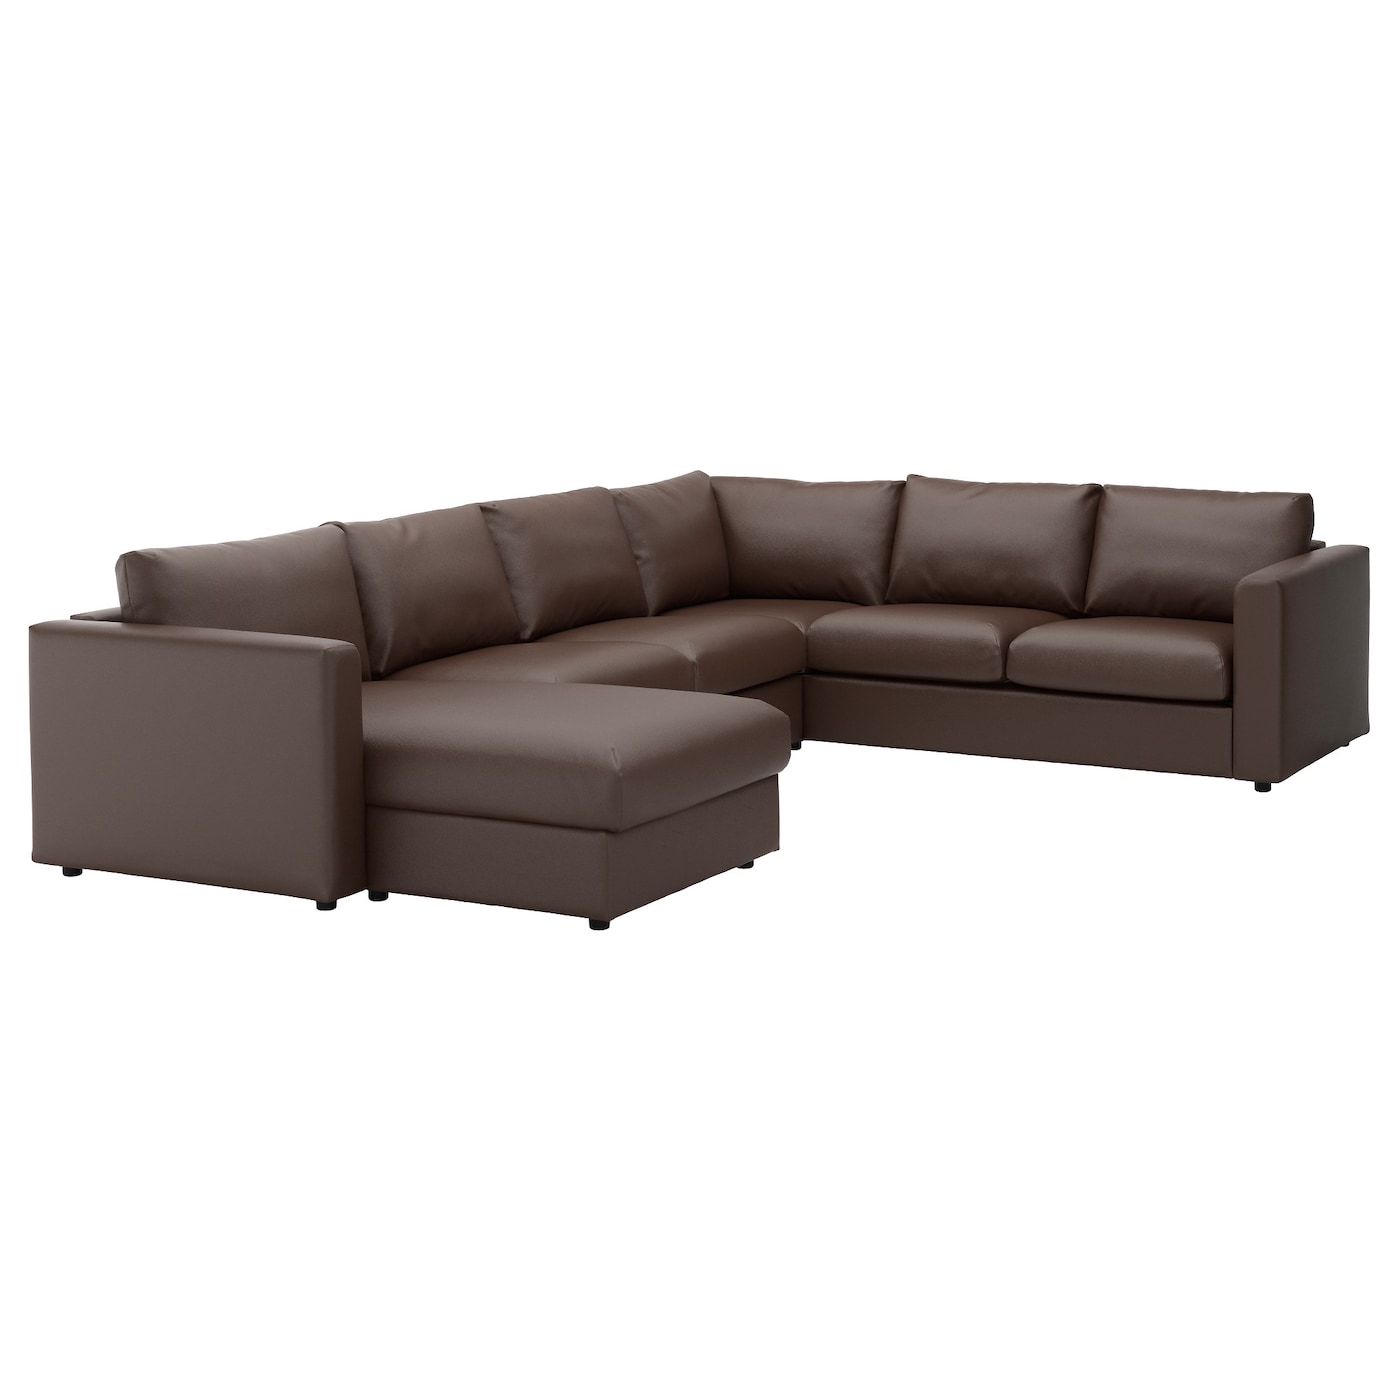 Vimle corner sofa 5 seat with chaise longue farsta dark for Ikea corner sofa